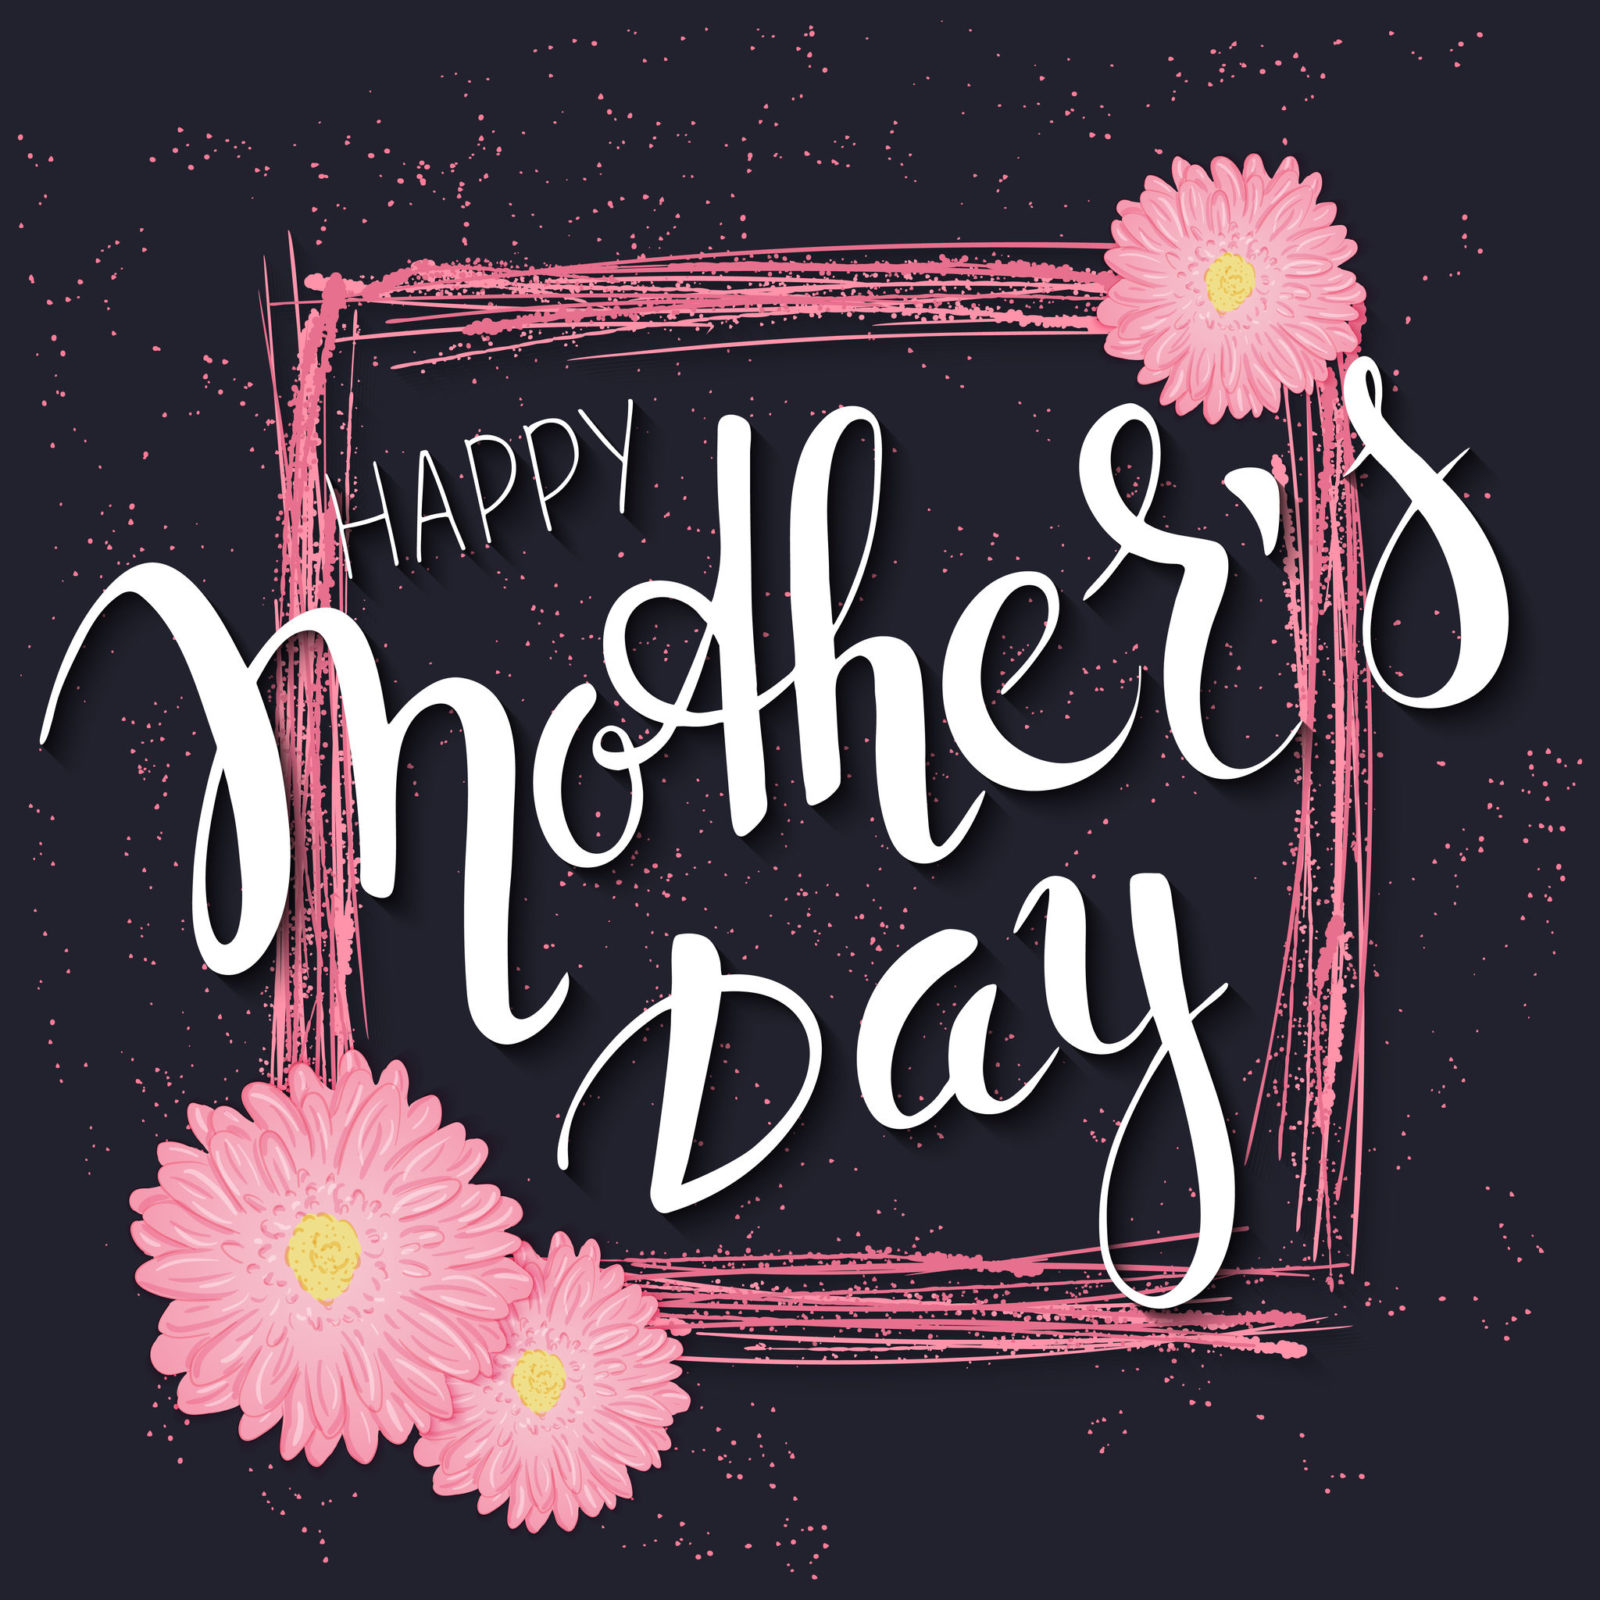 Vector Hand Drawn Mothers Day Lettering With Branches, Swirls, Flowers And Quote - Happy Mothers Day. Can Be Used As Mothers Dar Card Or Poster.